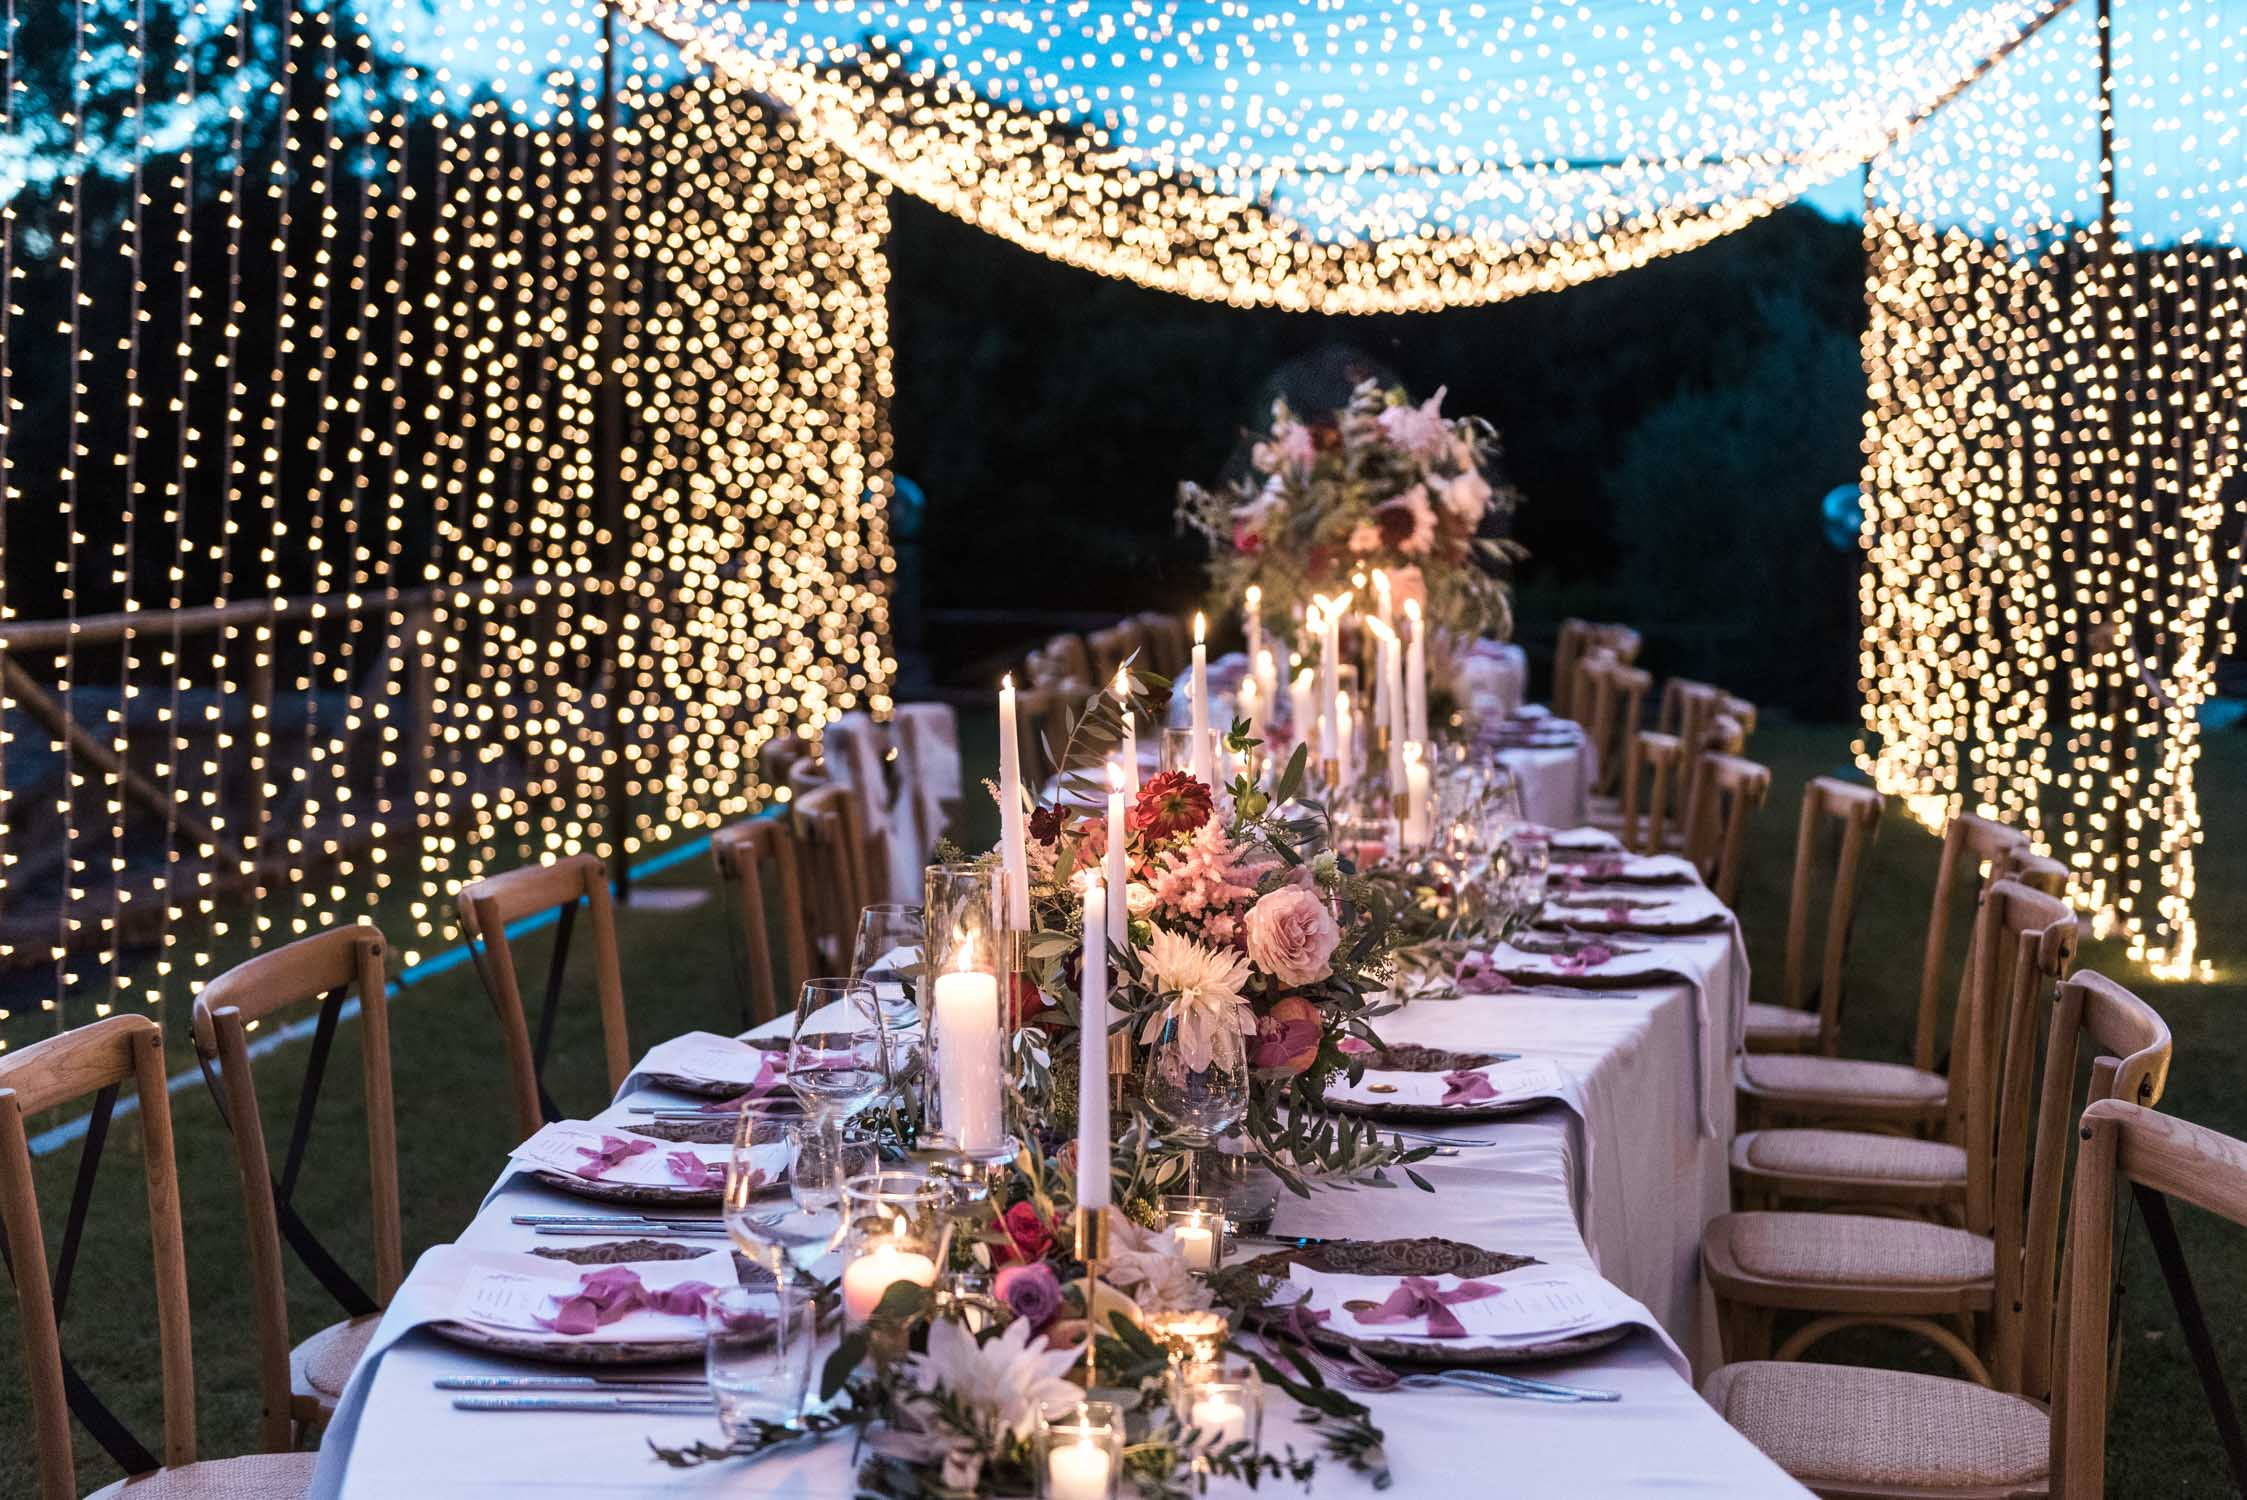 Flower abundant S shaped wedding table setting in a tunnel of light in Siena, Tuscany, Italy